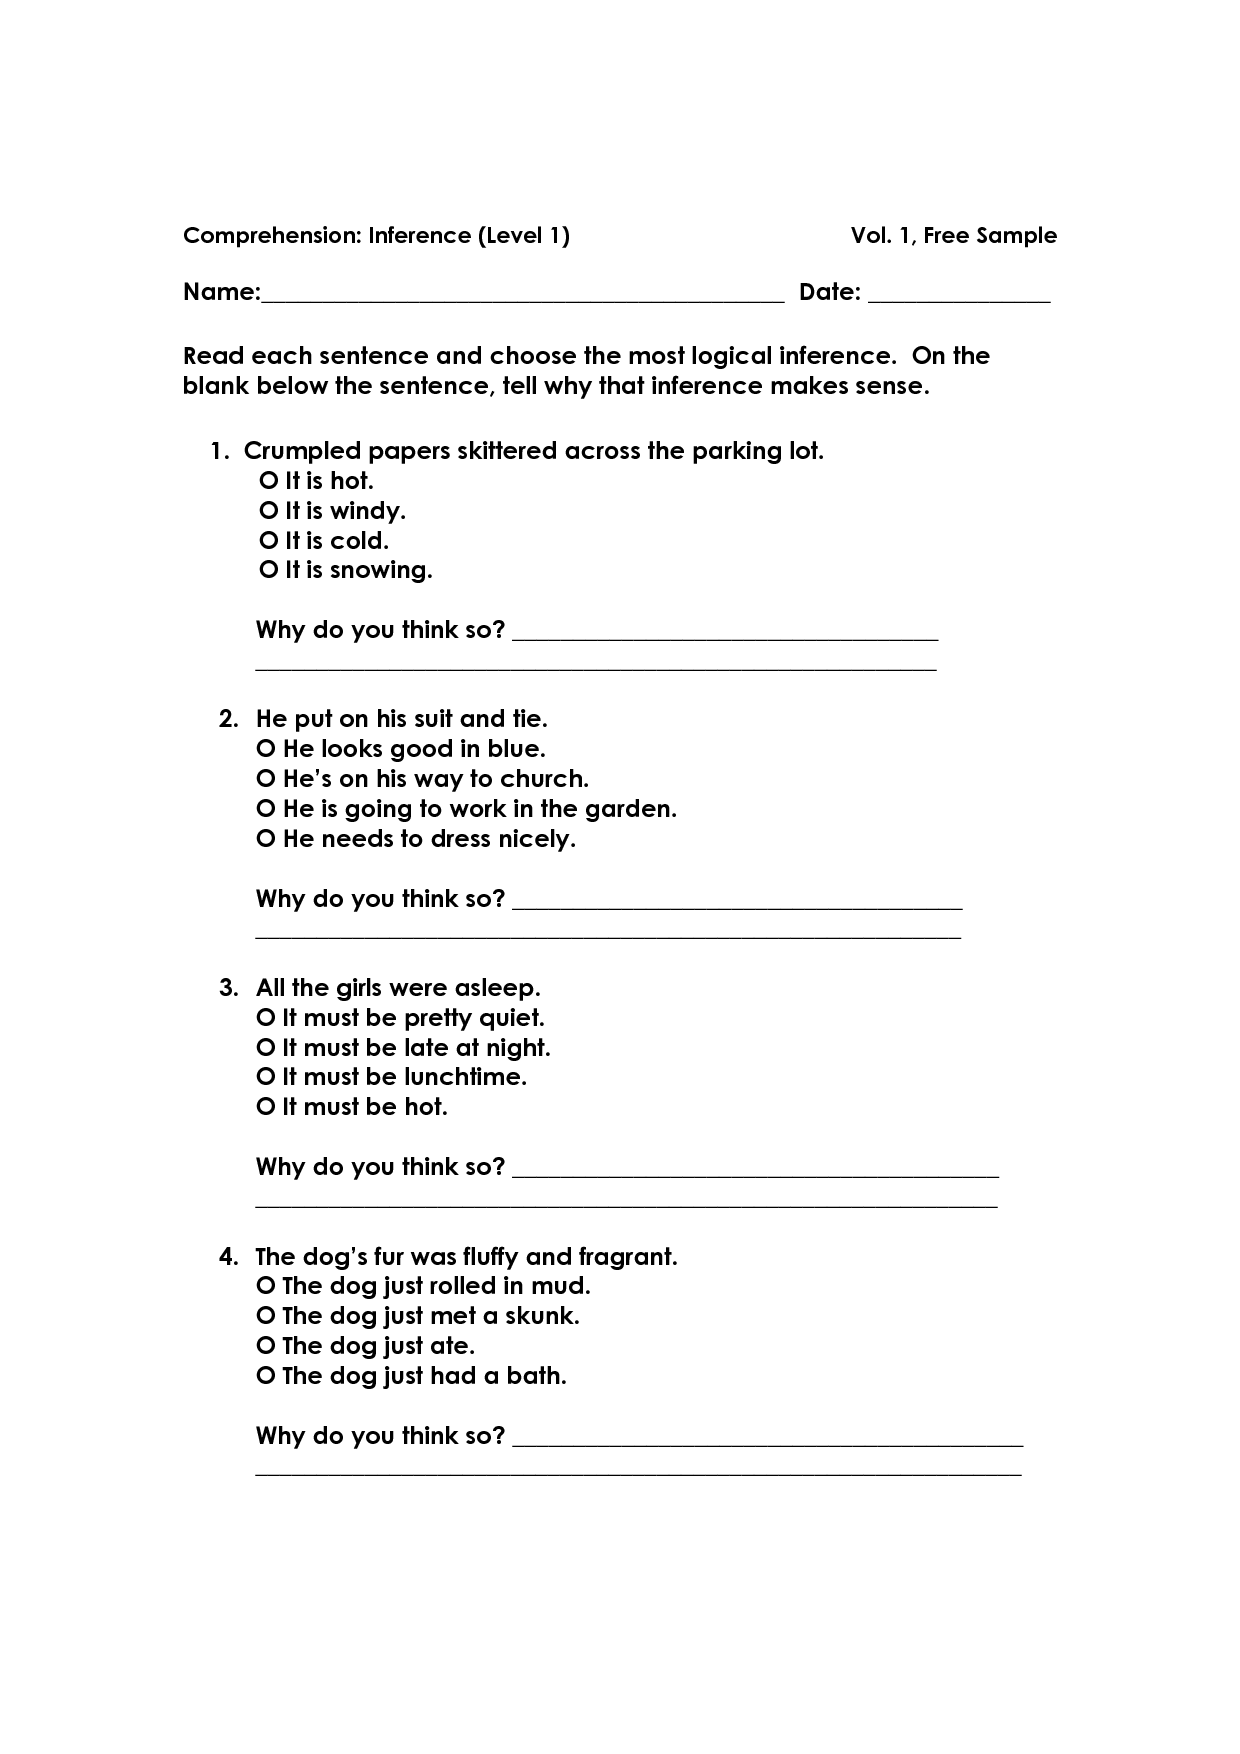 Drawing Conclusions Worksheet Grade 4 Printable